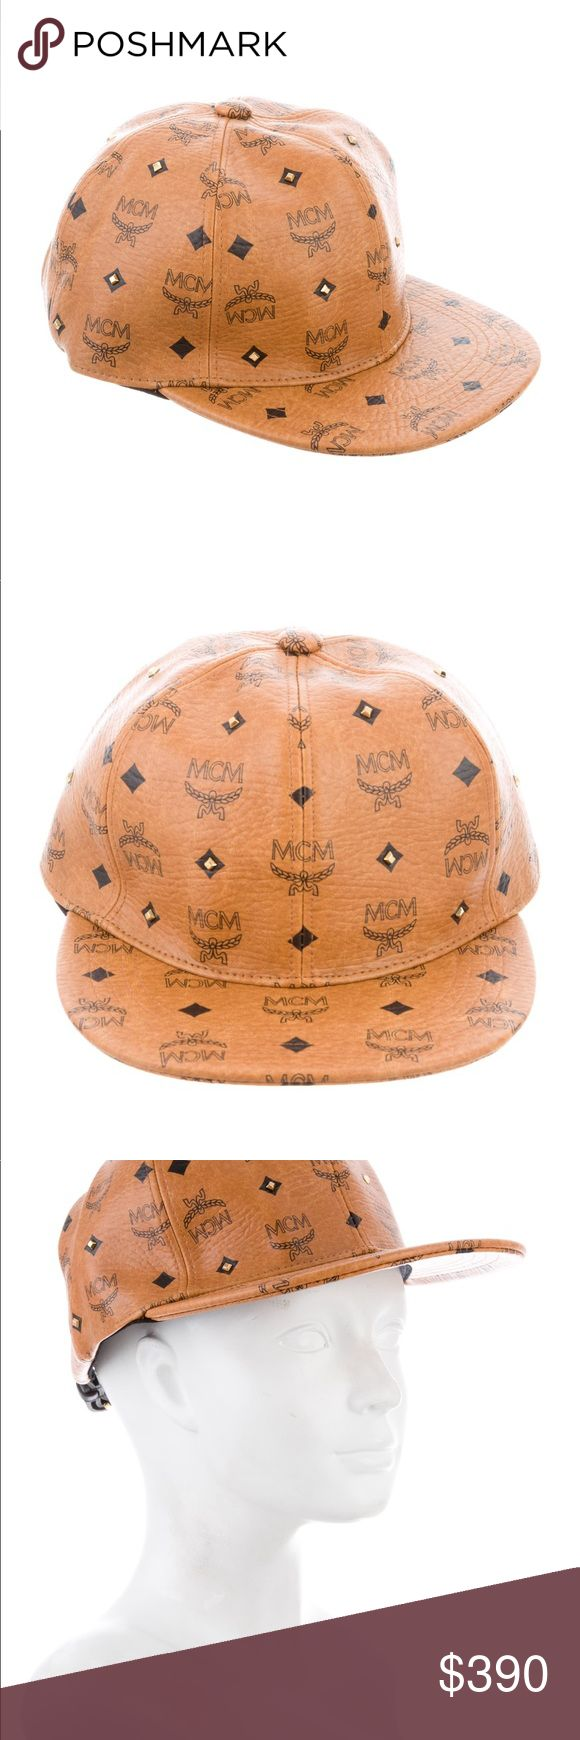 MCM hat leather Men's cognac and black Visetos leather MCM cap with gold-tone hardware, stud embellishments throughout and adjustable buckle strap at back. Designer size M. MCM Accessories Hats